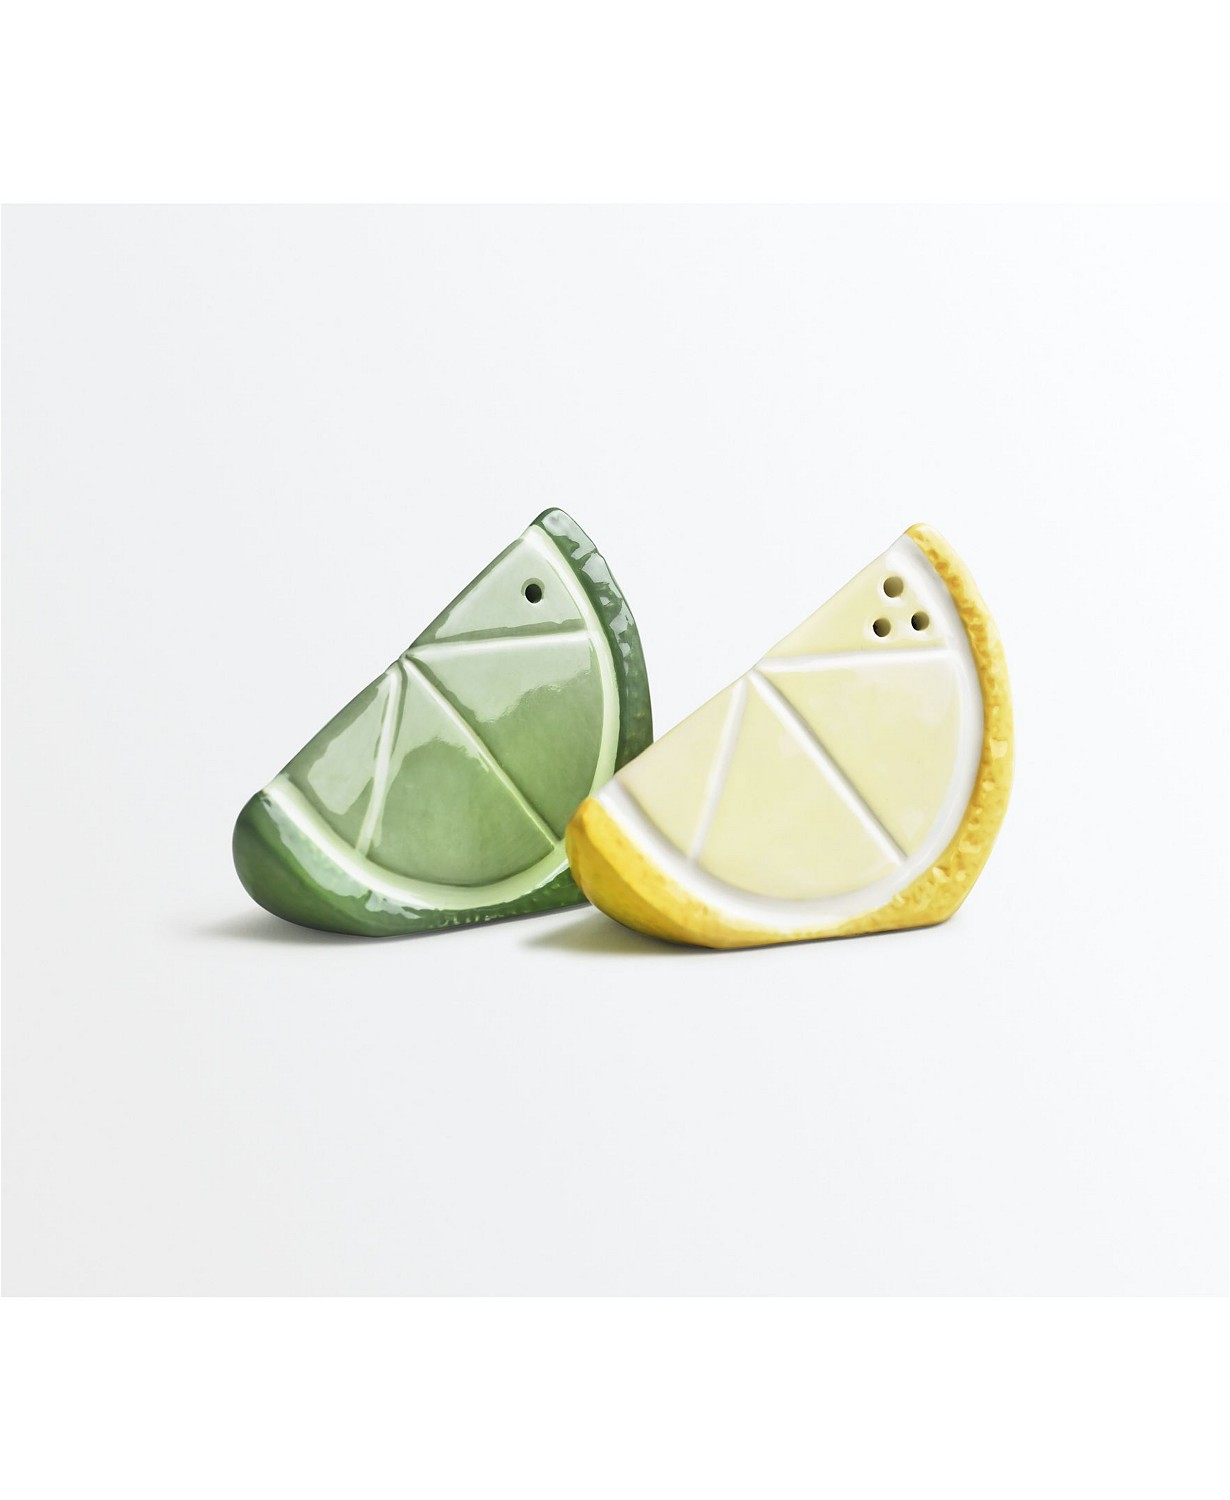 Lemon and Lime Salt & Pepper Shakers, Created for Macy's